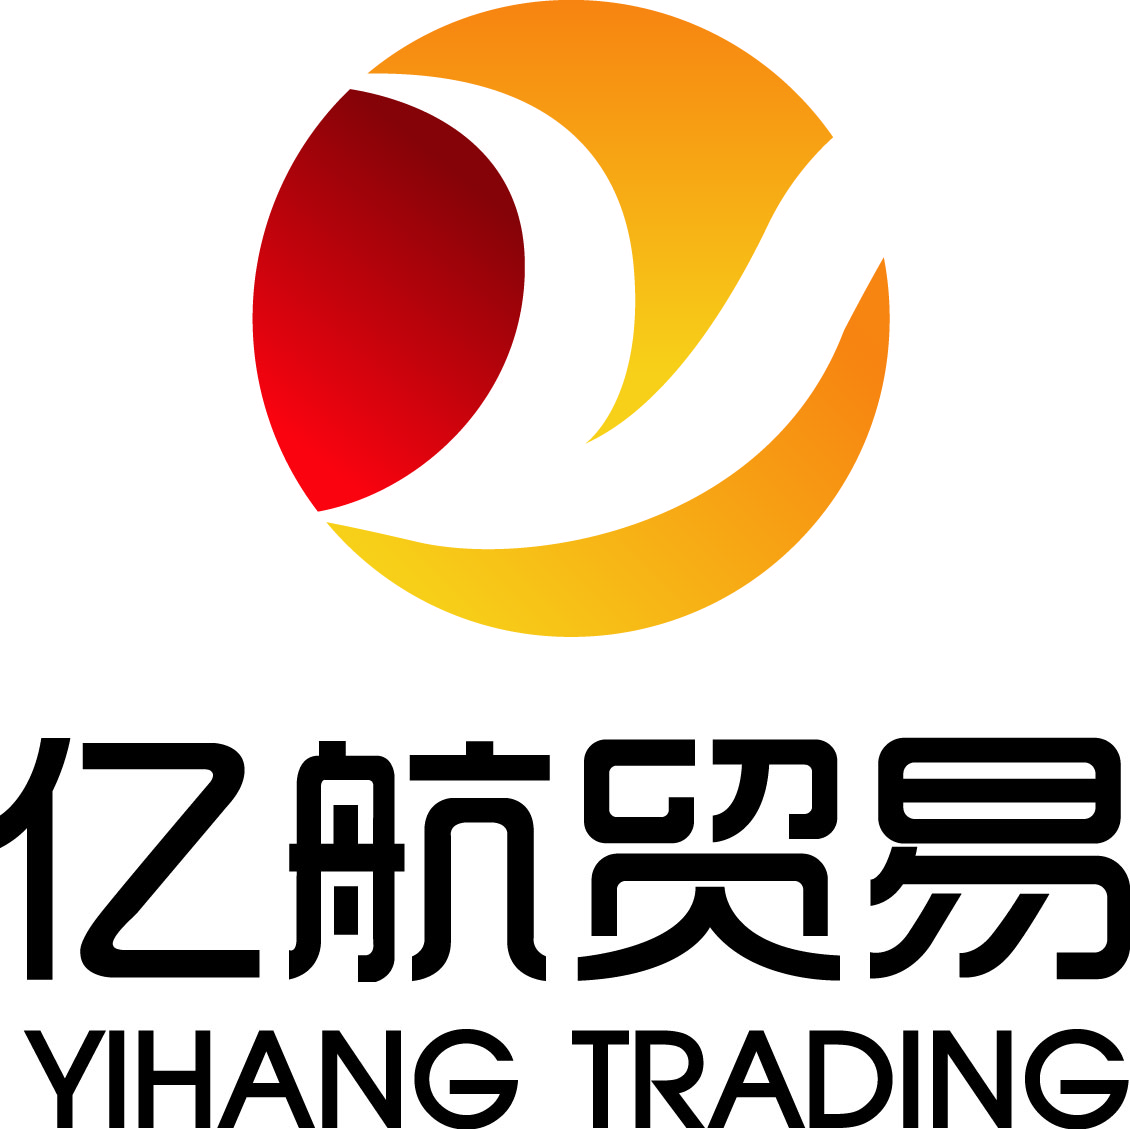 WENZHOU YIHANG IMPORT AND EXPORT TRADING